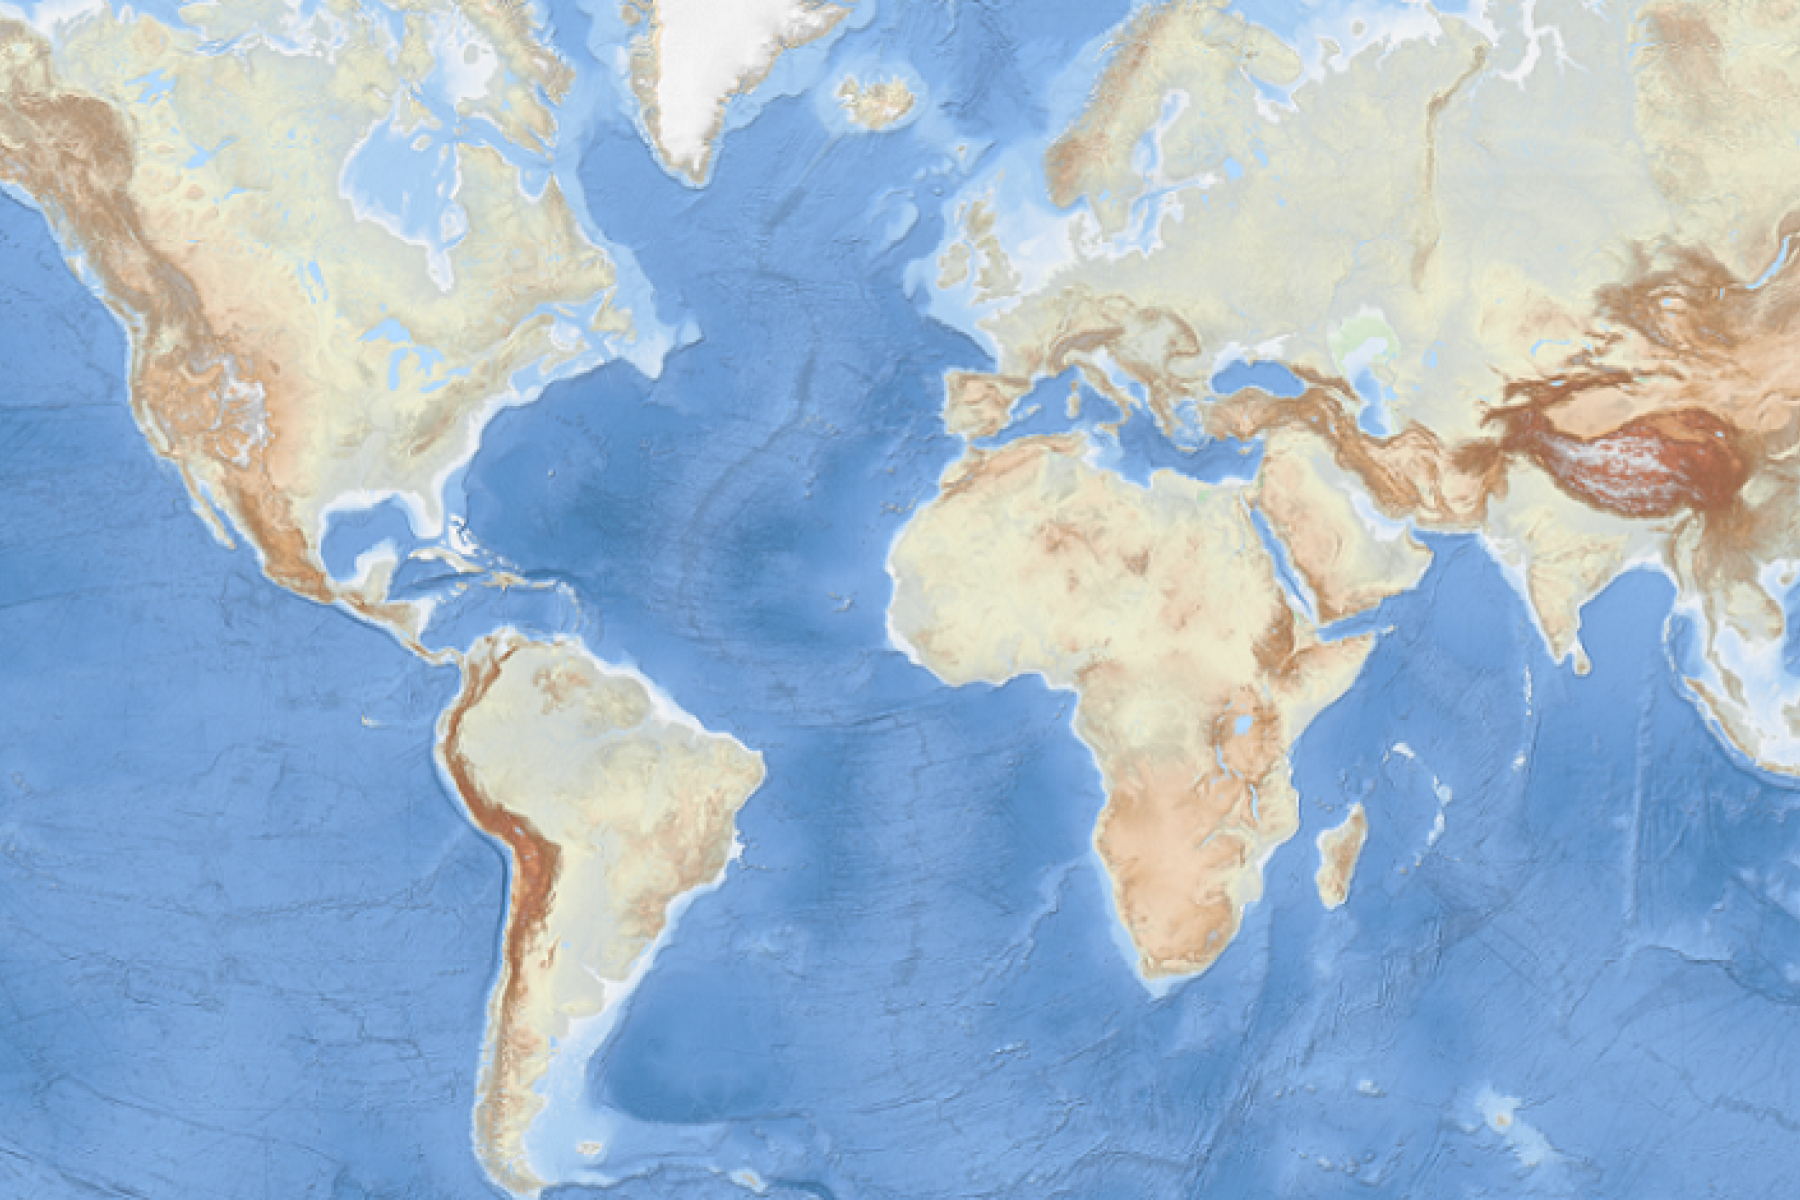 The EMODnet World Base Layer Service offers the highest resolved bathymetric worldwide layout